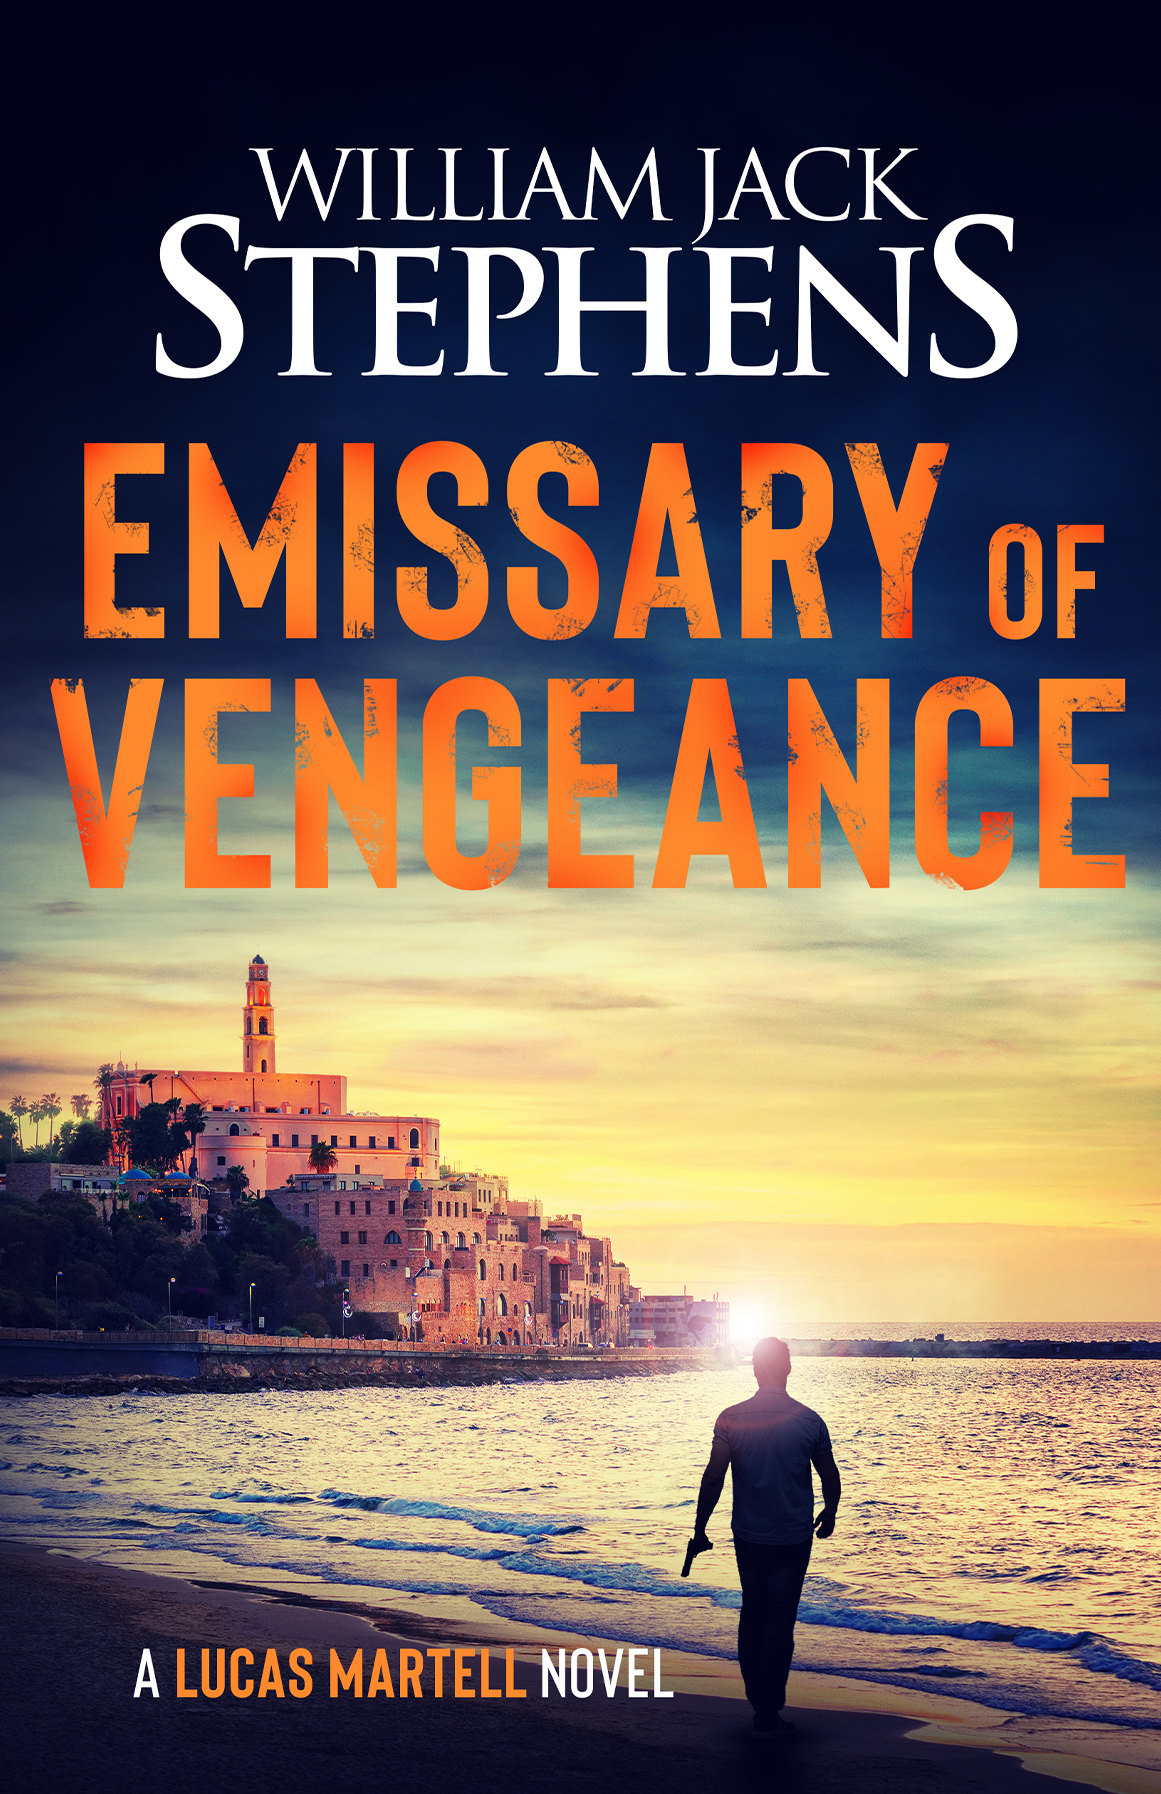 Emissary of Vengeance by William Jack Stephens